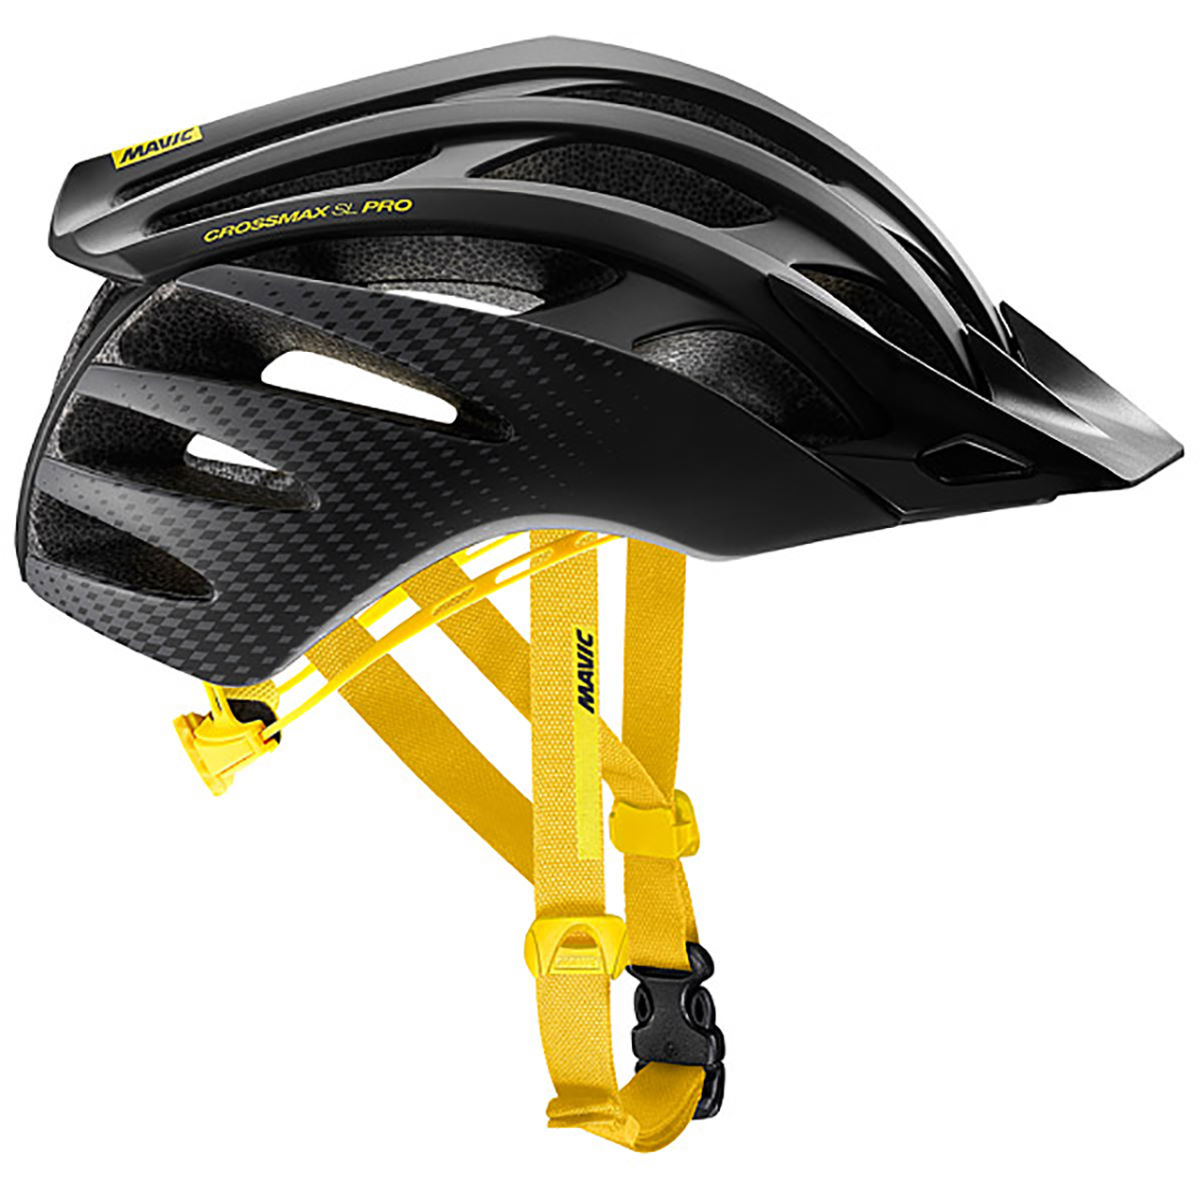 Casque Mavic Crossmax SL Pro - M Black - Yellow Mavic Casques